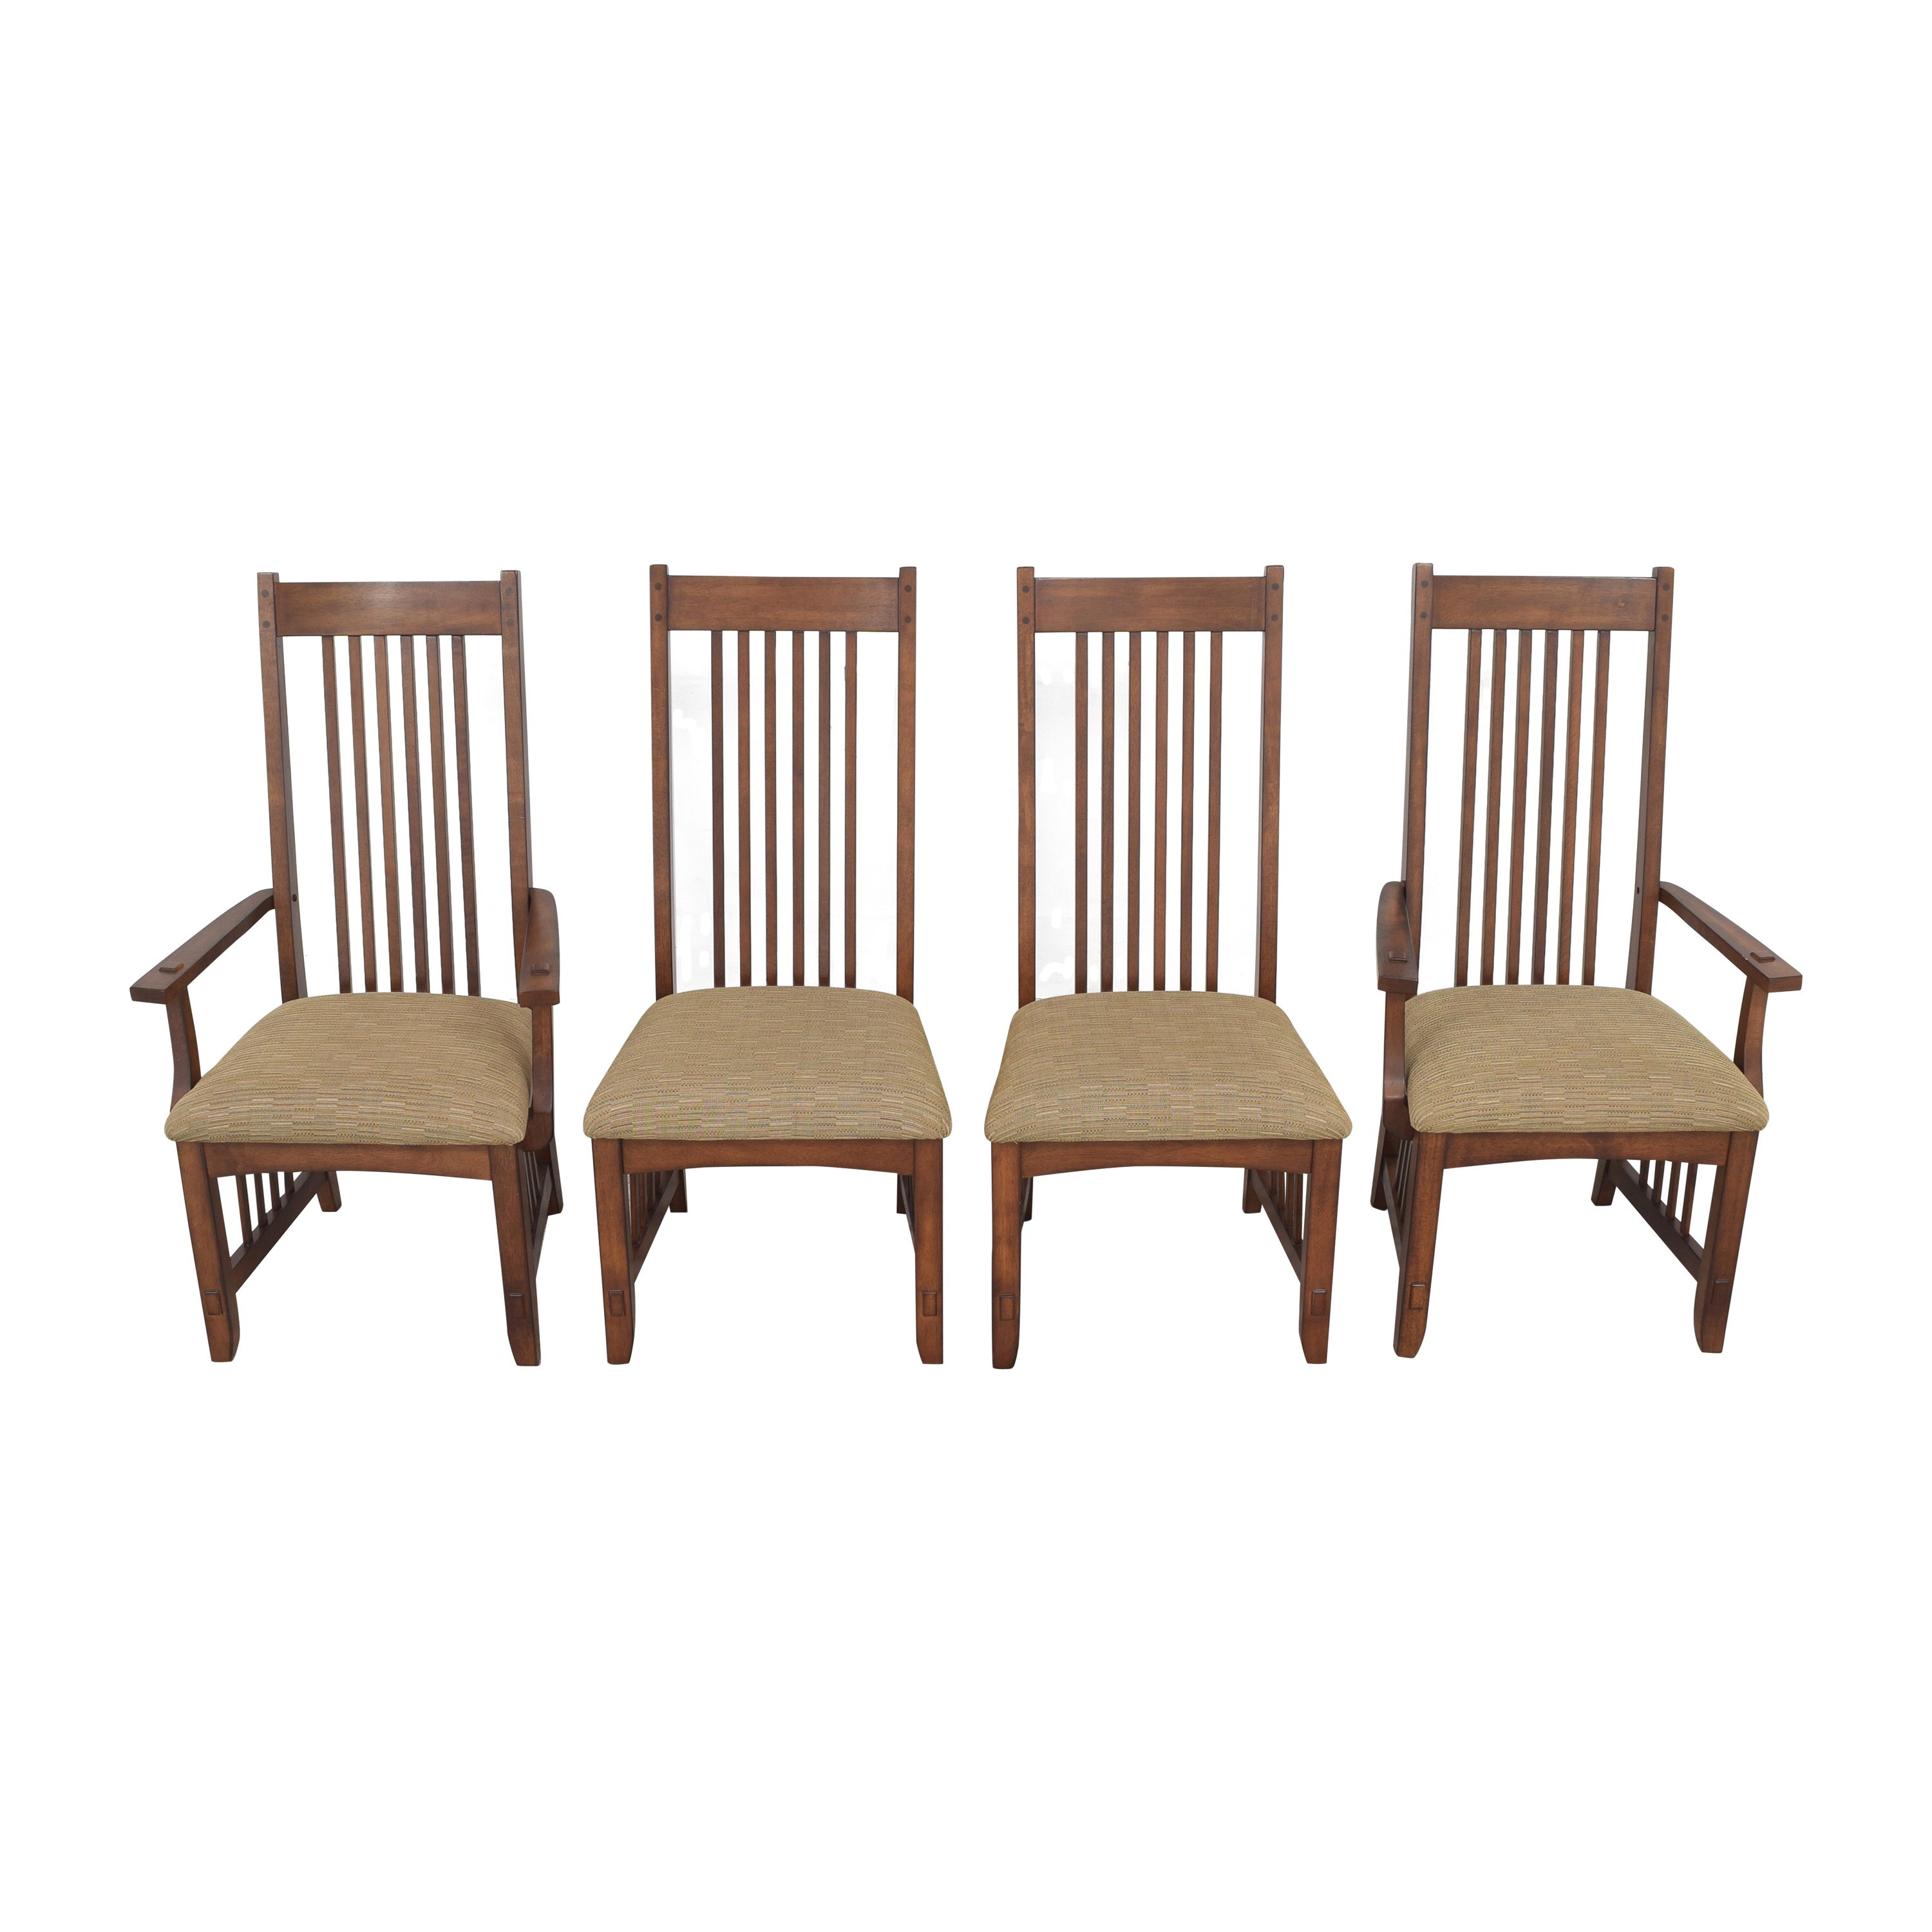 buy Green River Furniture Green River Mission Style Dining Chairs online